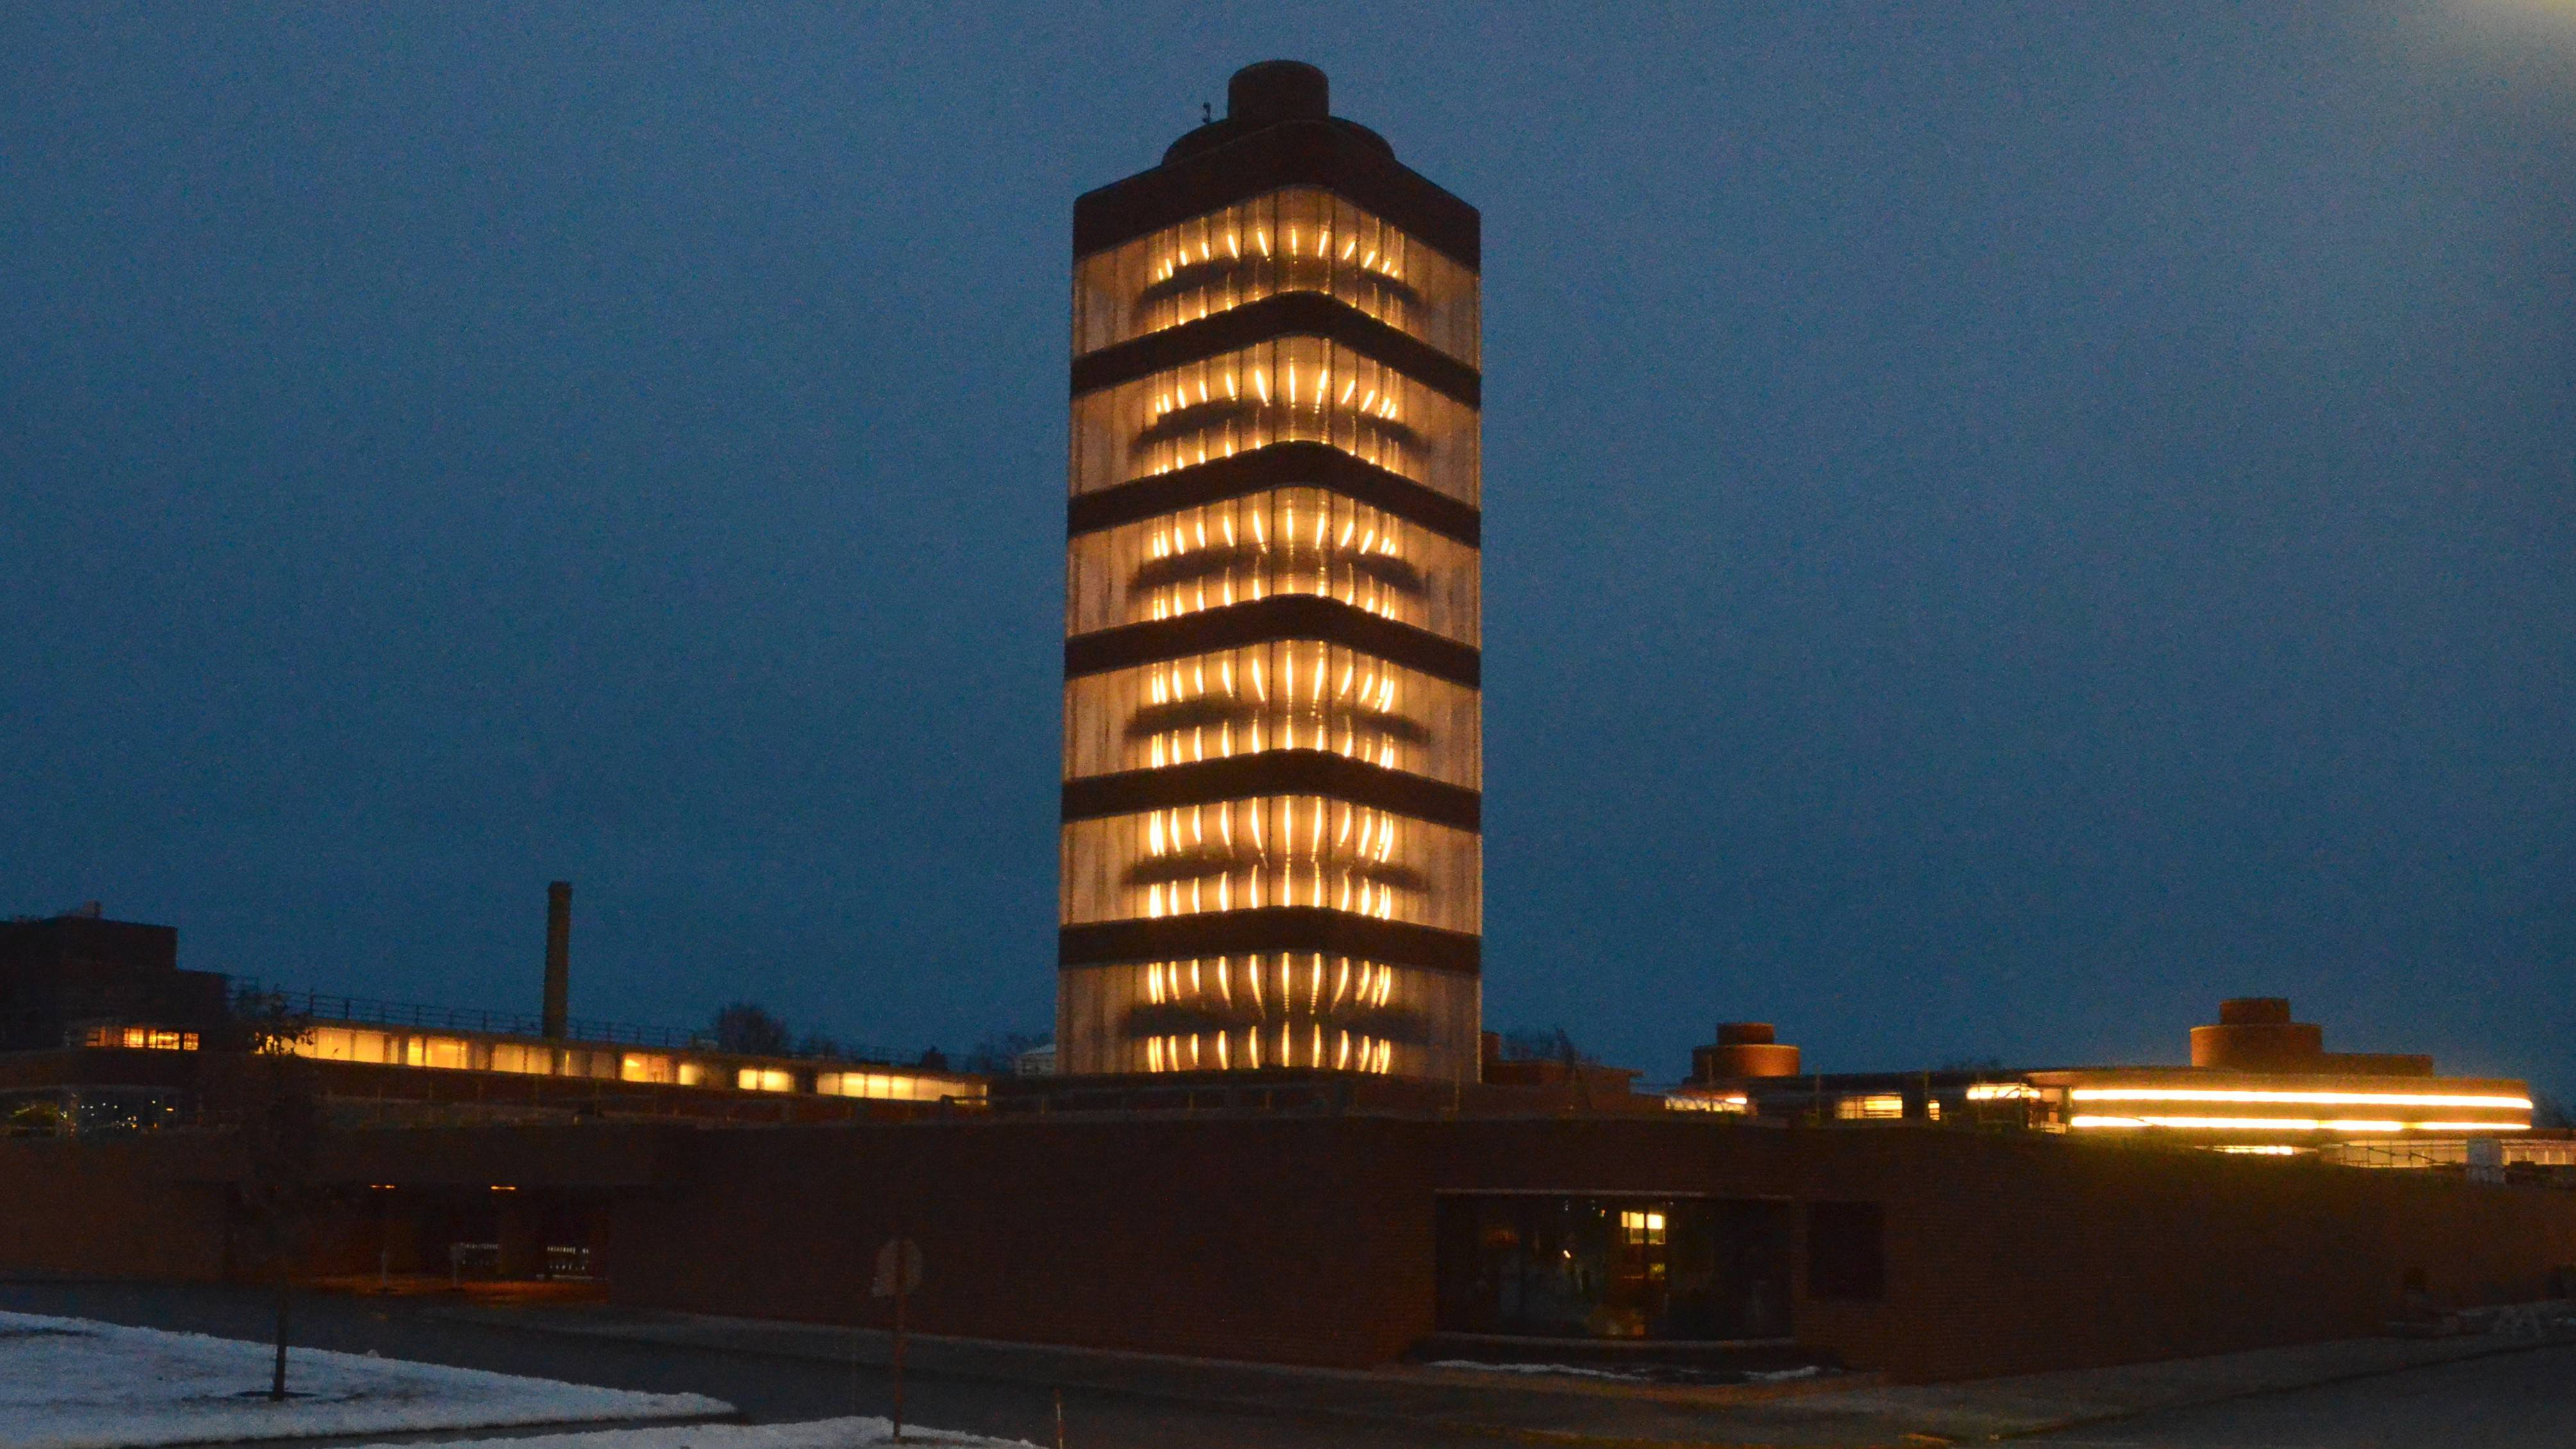 This Dec. 21, 2013 photo provided by SC Johnson shows the SC Johnson Research Tower designed by Frank Lloyd Wright lit up at night in Racine, Wis. Home products giant SC Johnson is opening the building for public tours for the first time starting May 2.